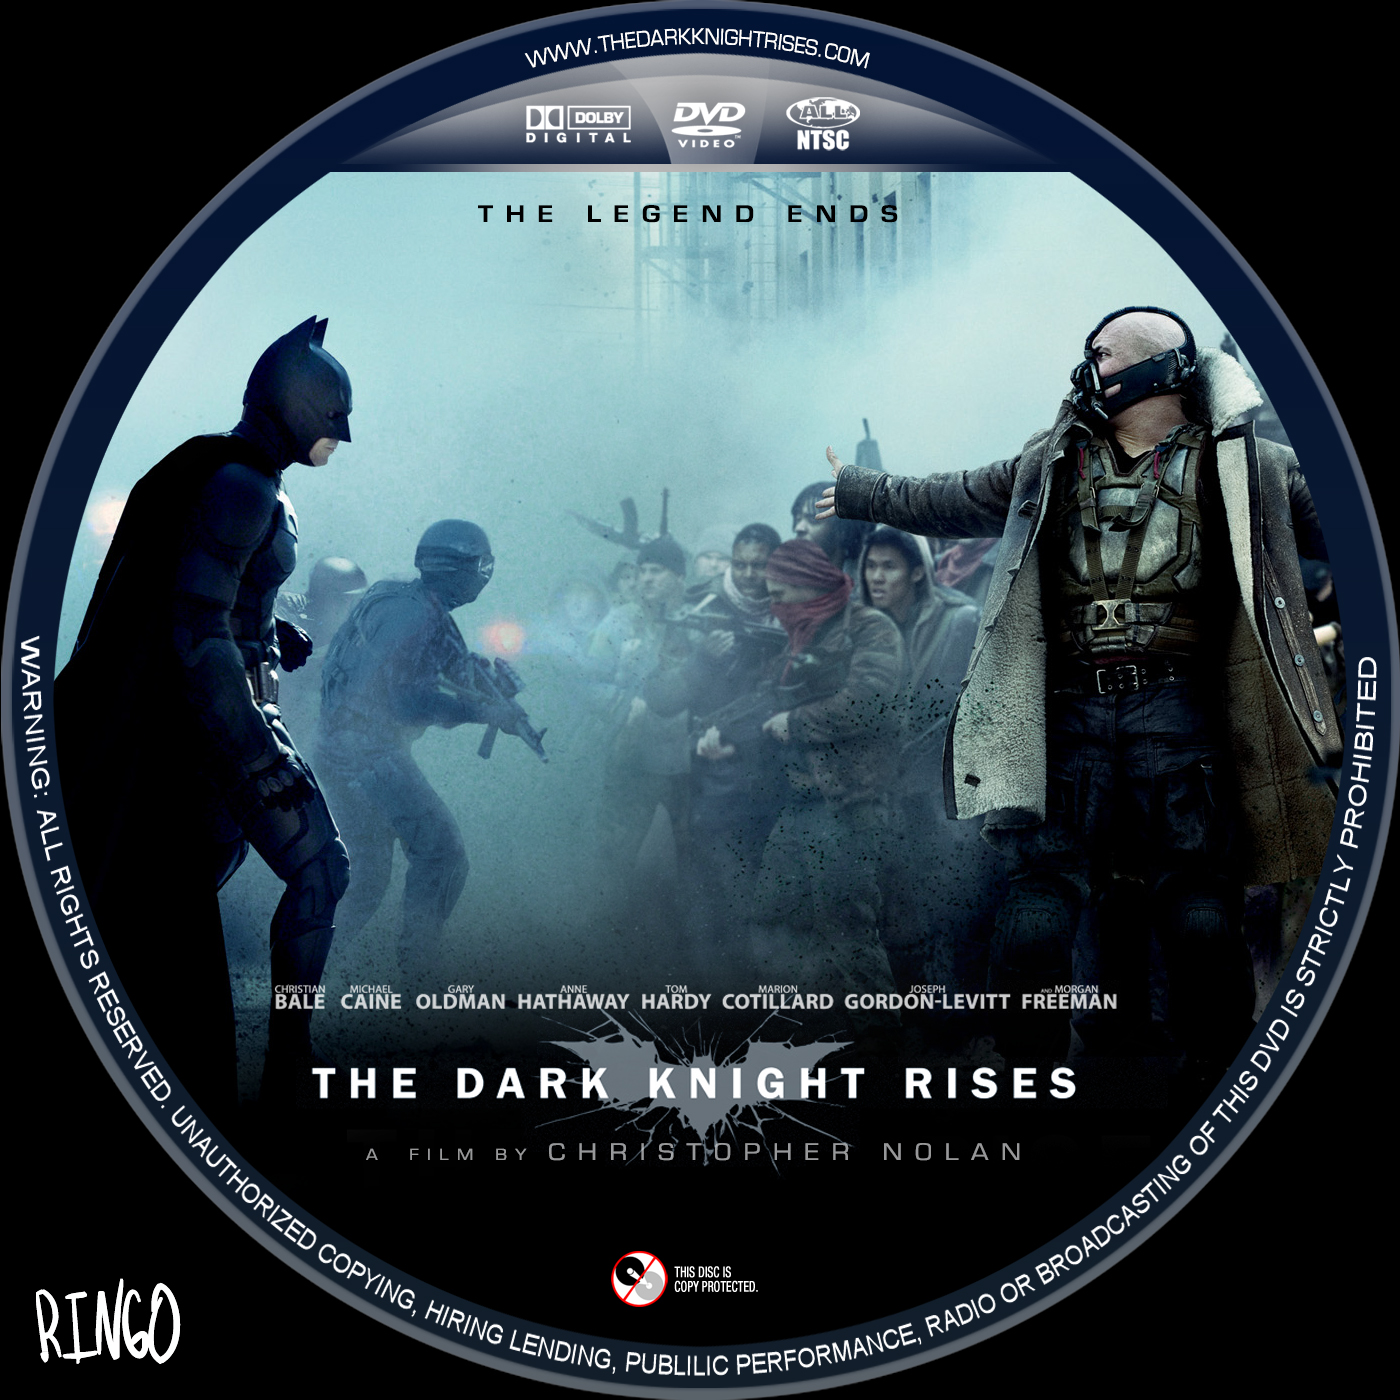 The Dark Knight Rises Cover Art